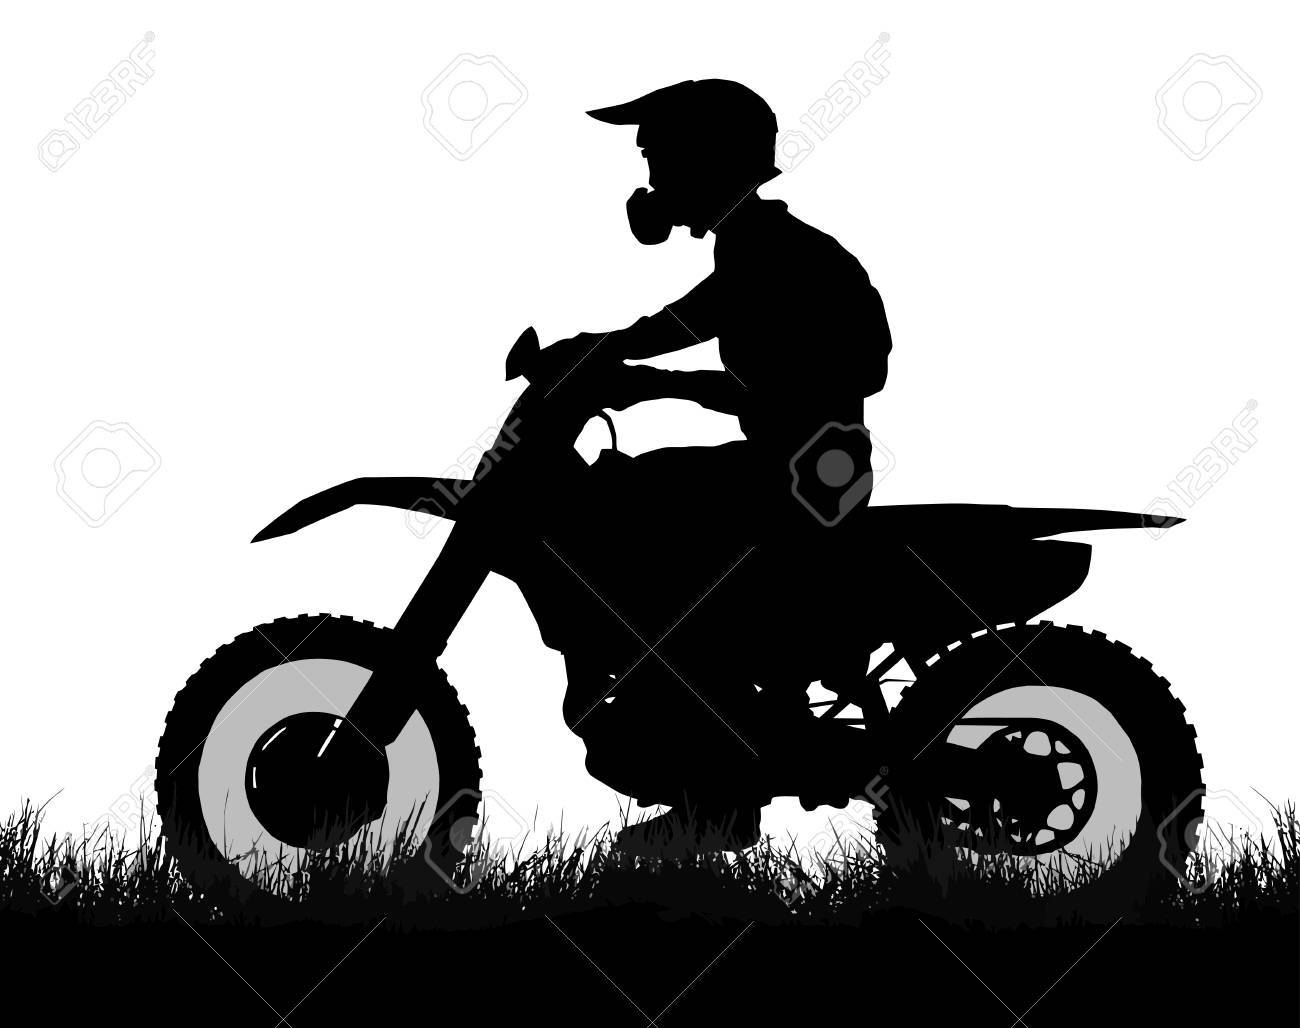 Side Profile Silhouette Of Off Road Biker With Scrambler On Grass